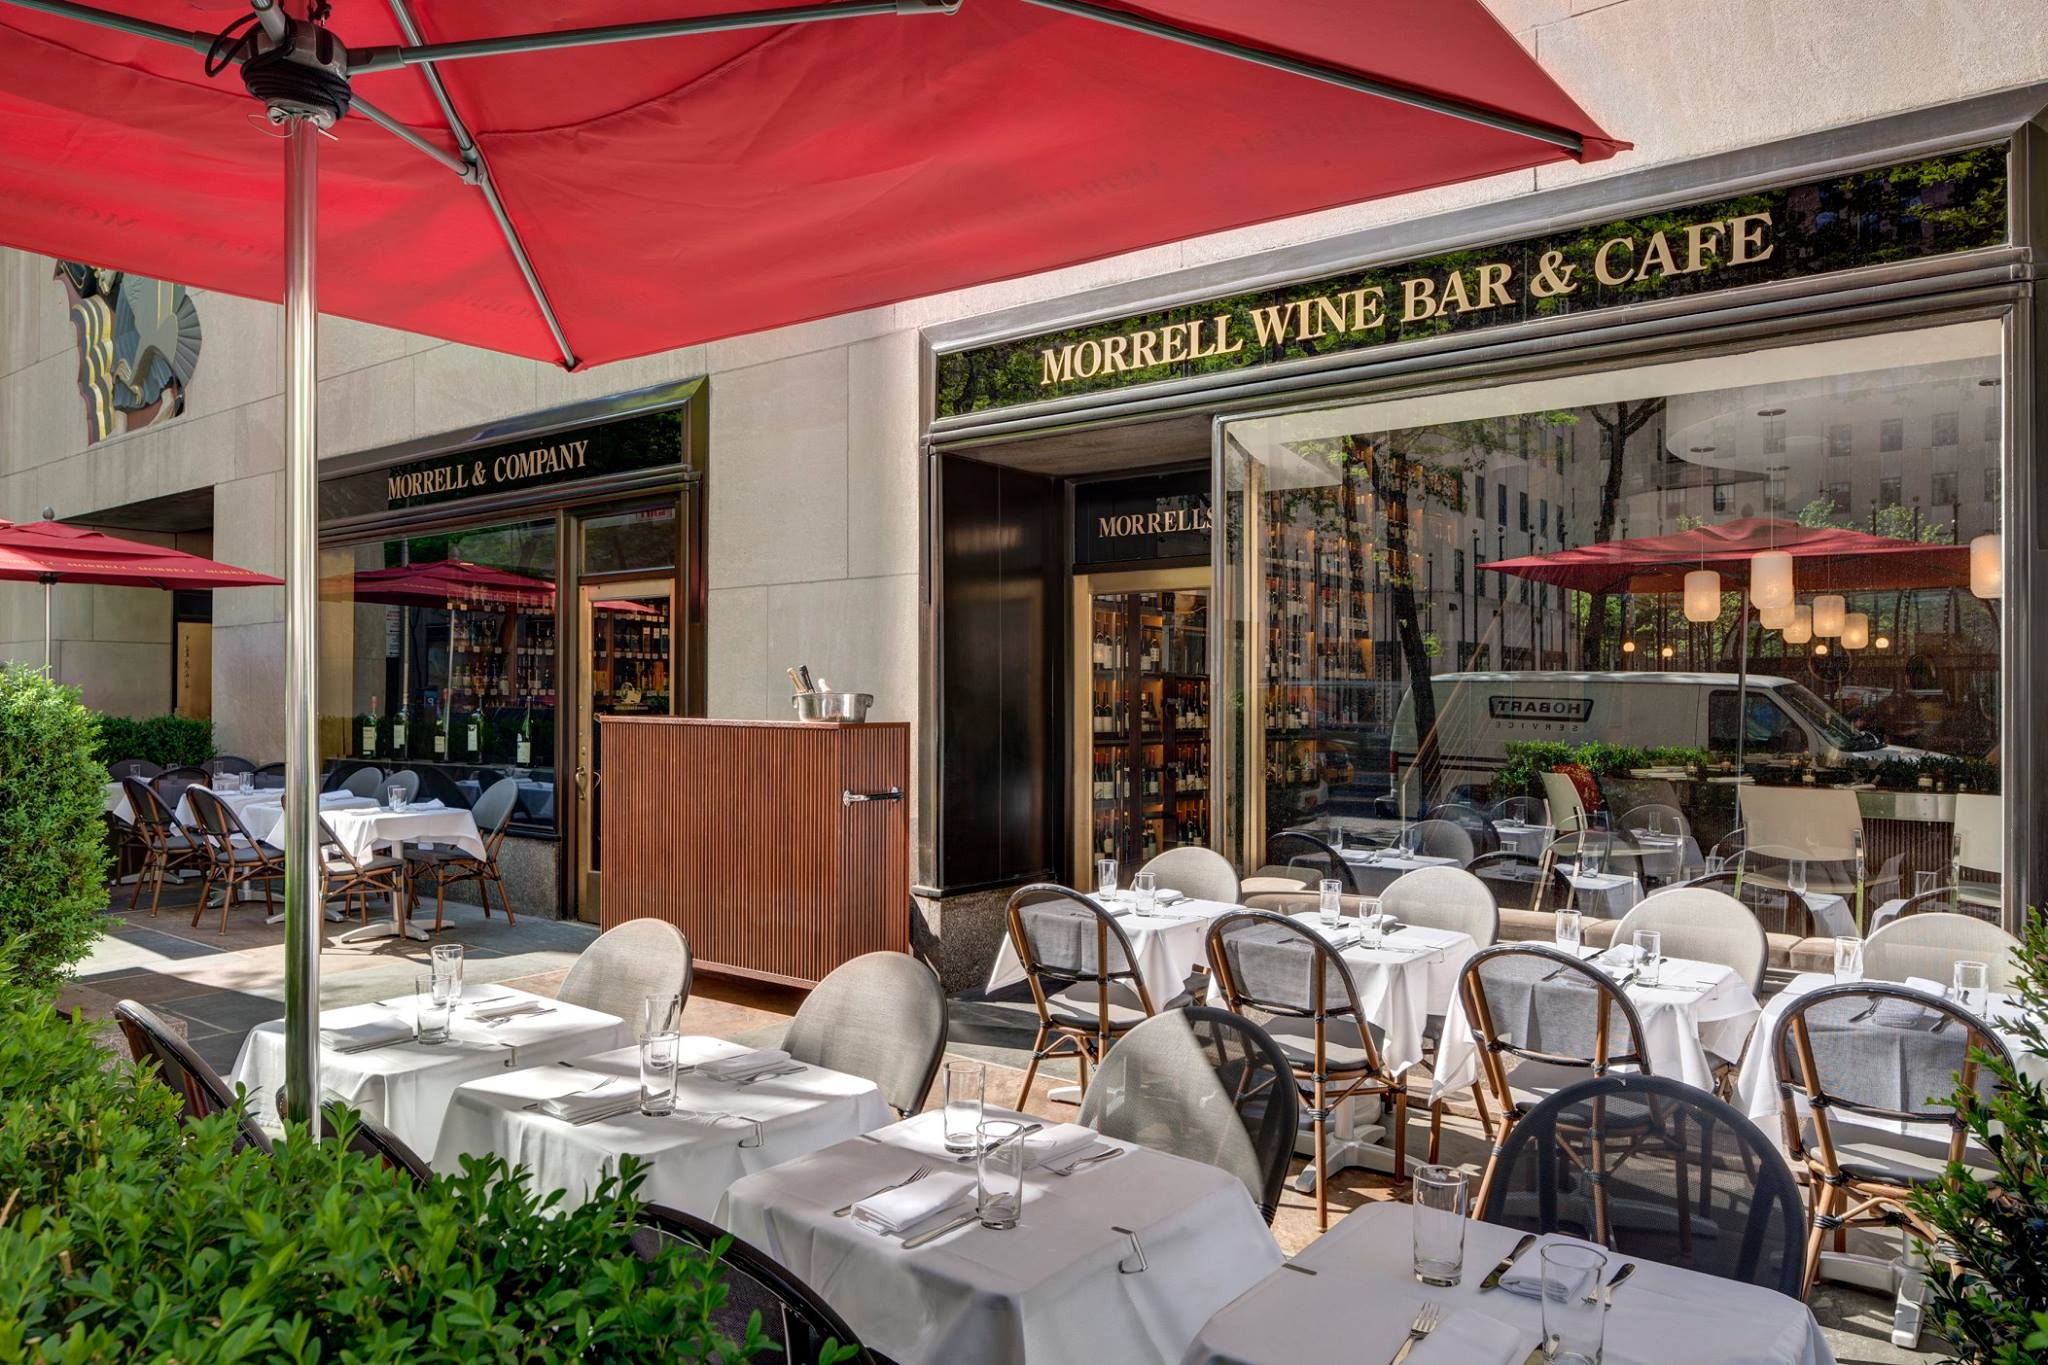 Patio event space at Morrell Wine Bar & Cafe in New York City, NYC, NY/NJ Area